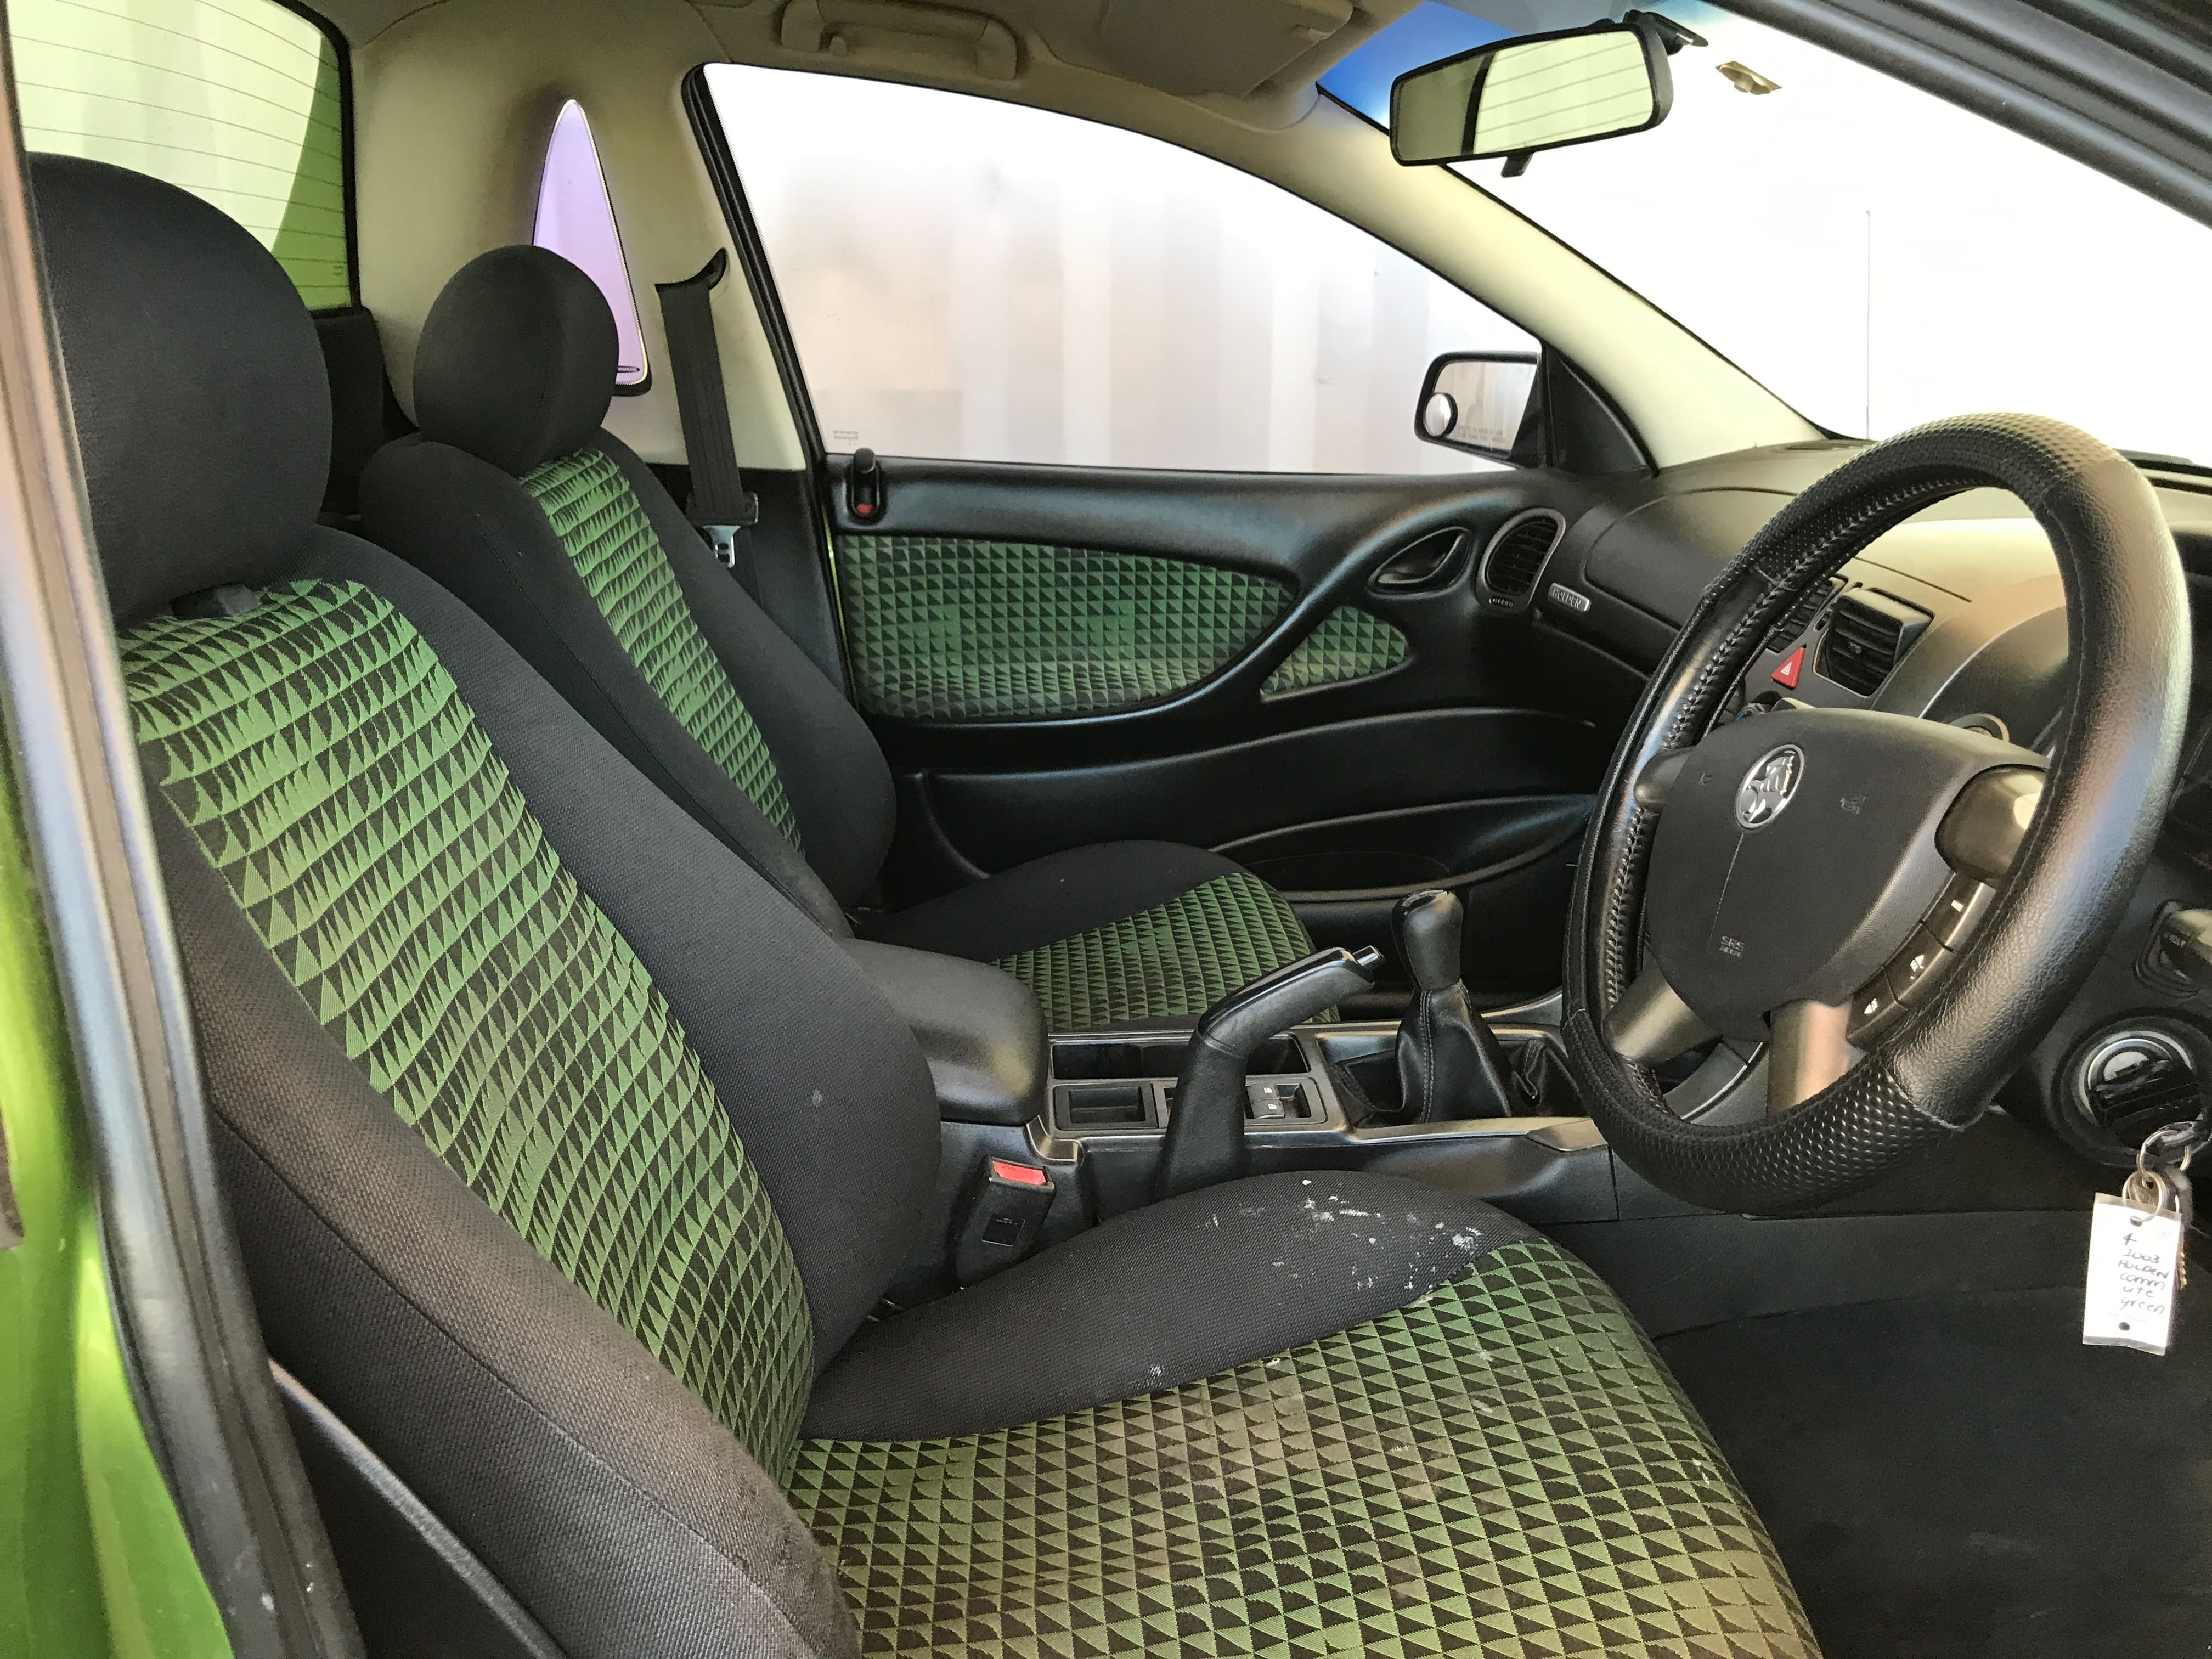 Manual Commodore Ute VY 6 cylinder with hardlid 2003 for sale 11-min